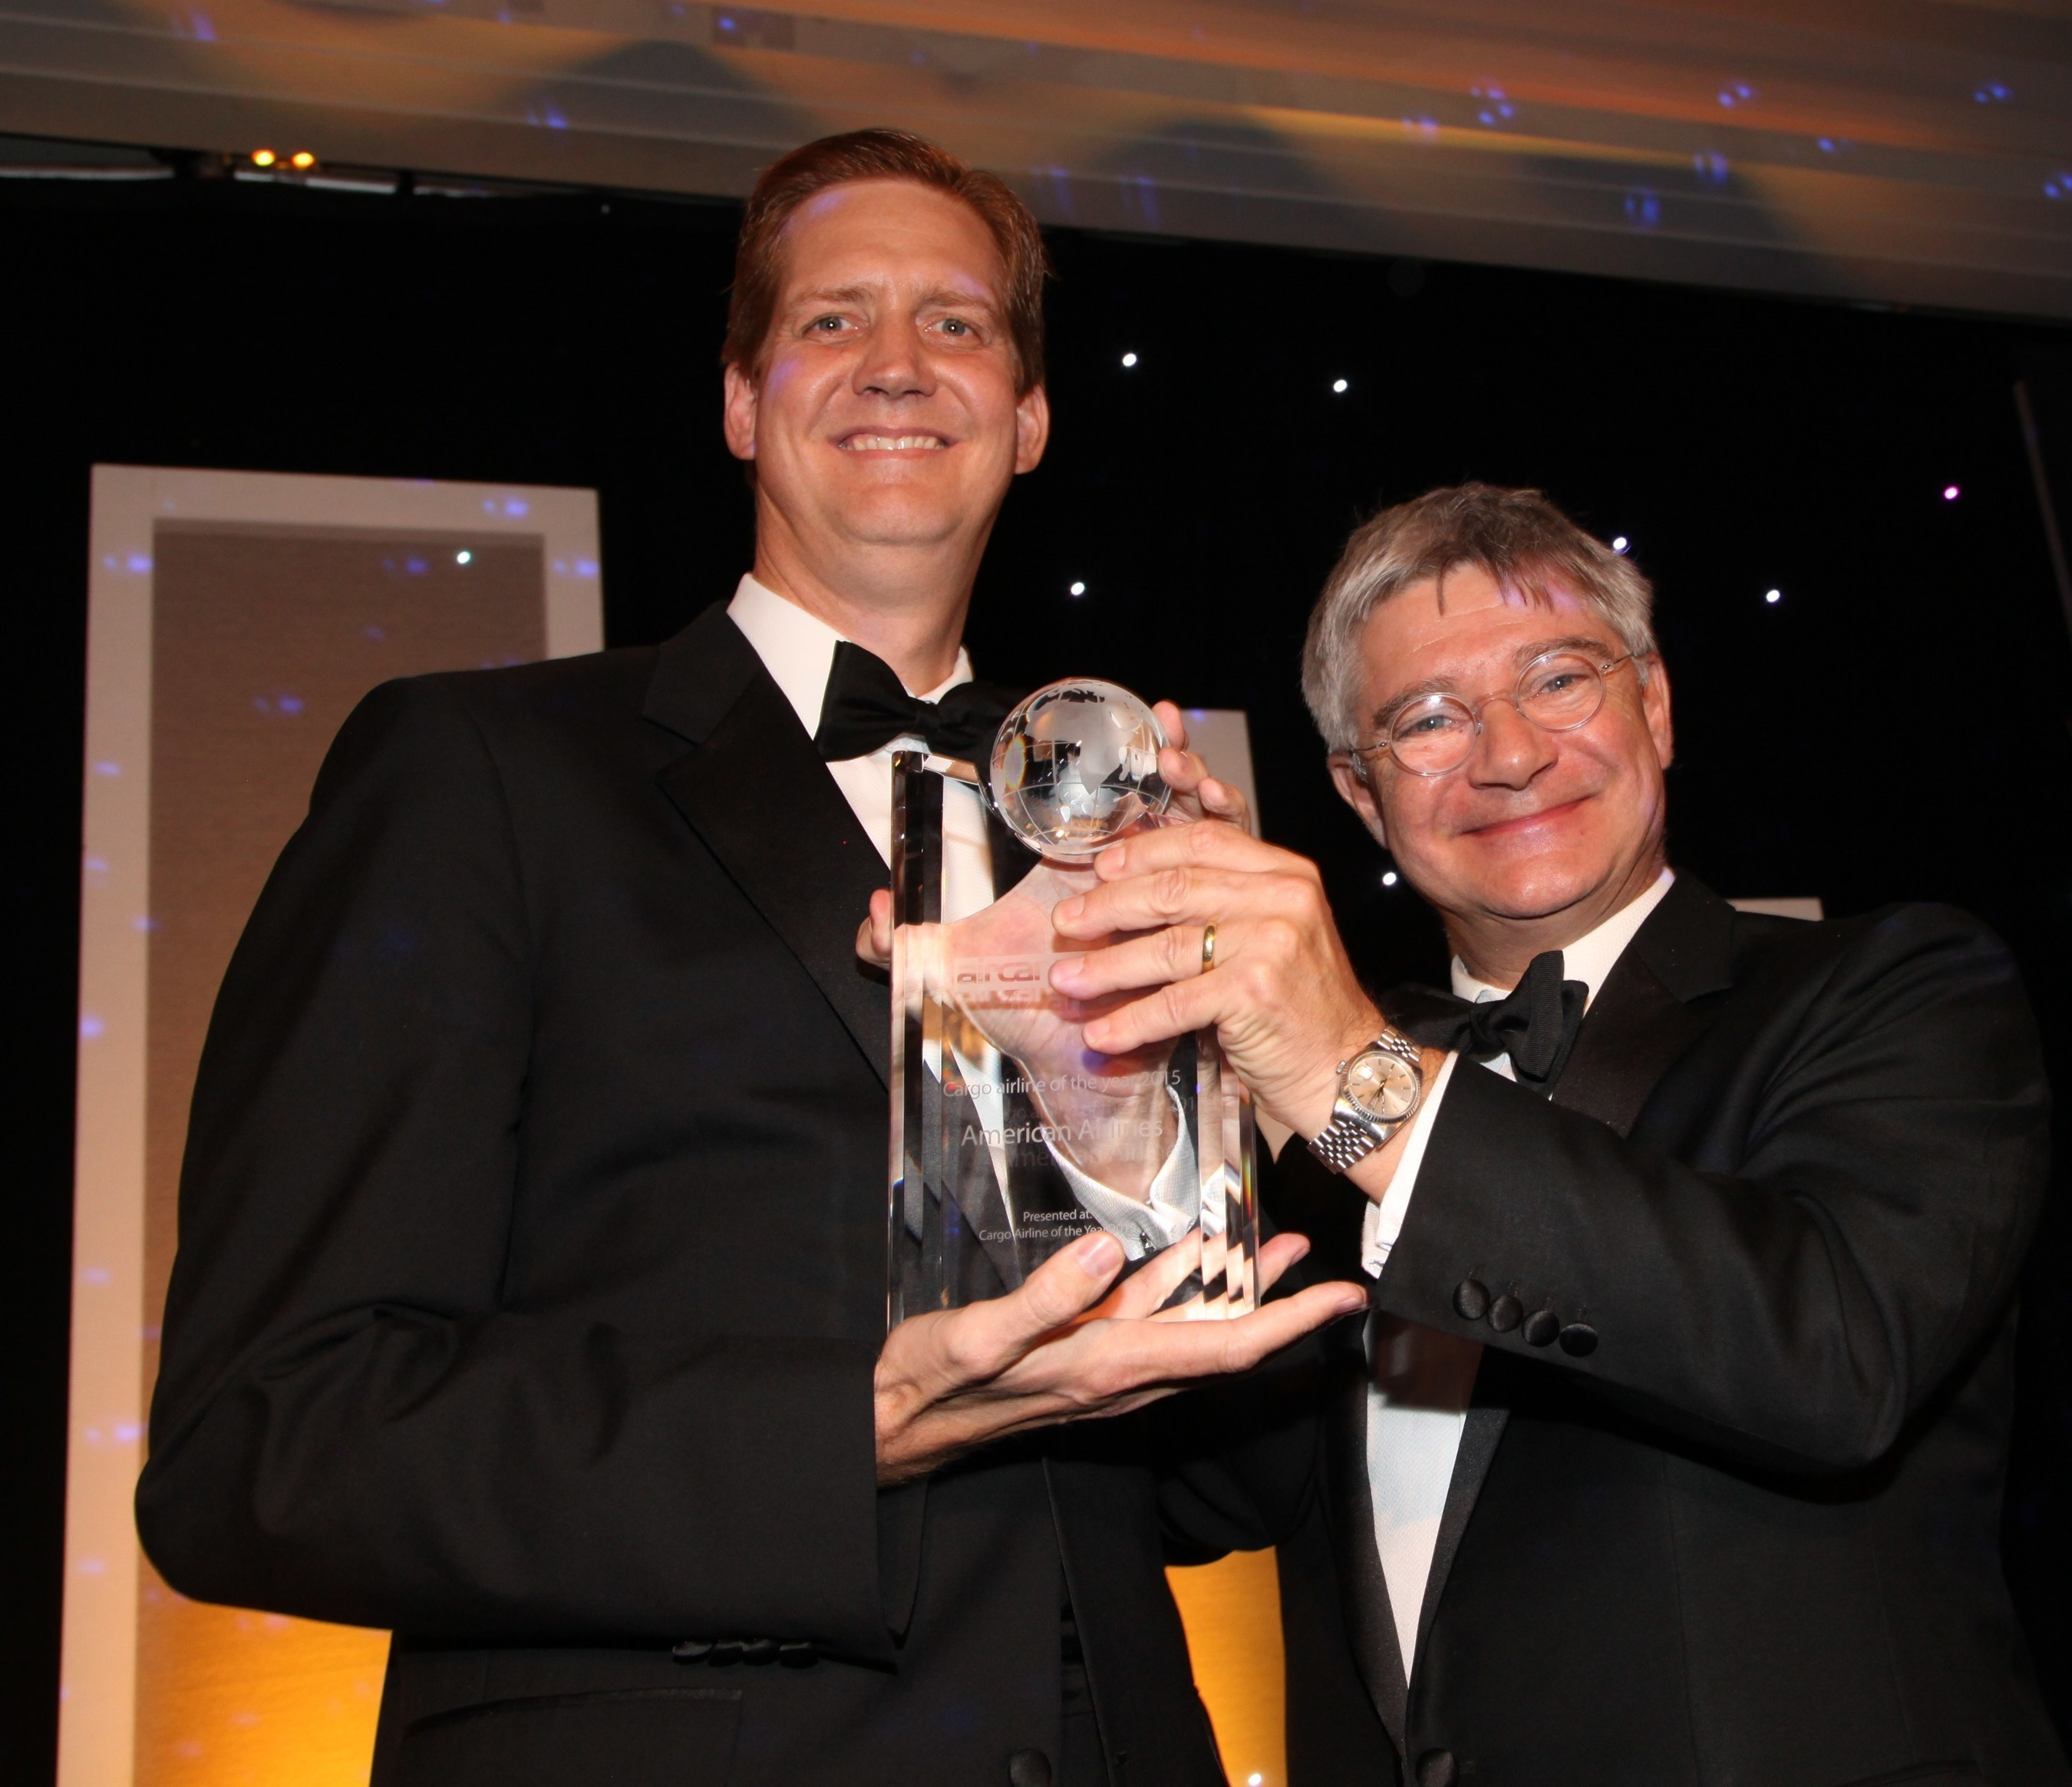 Jim Butler, president of American Airlines Cargo, accepts the Cargo Airline of the Year award from Mark Whitehead, CEO, Hactl